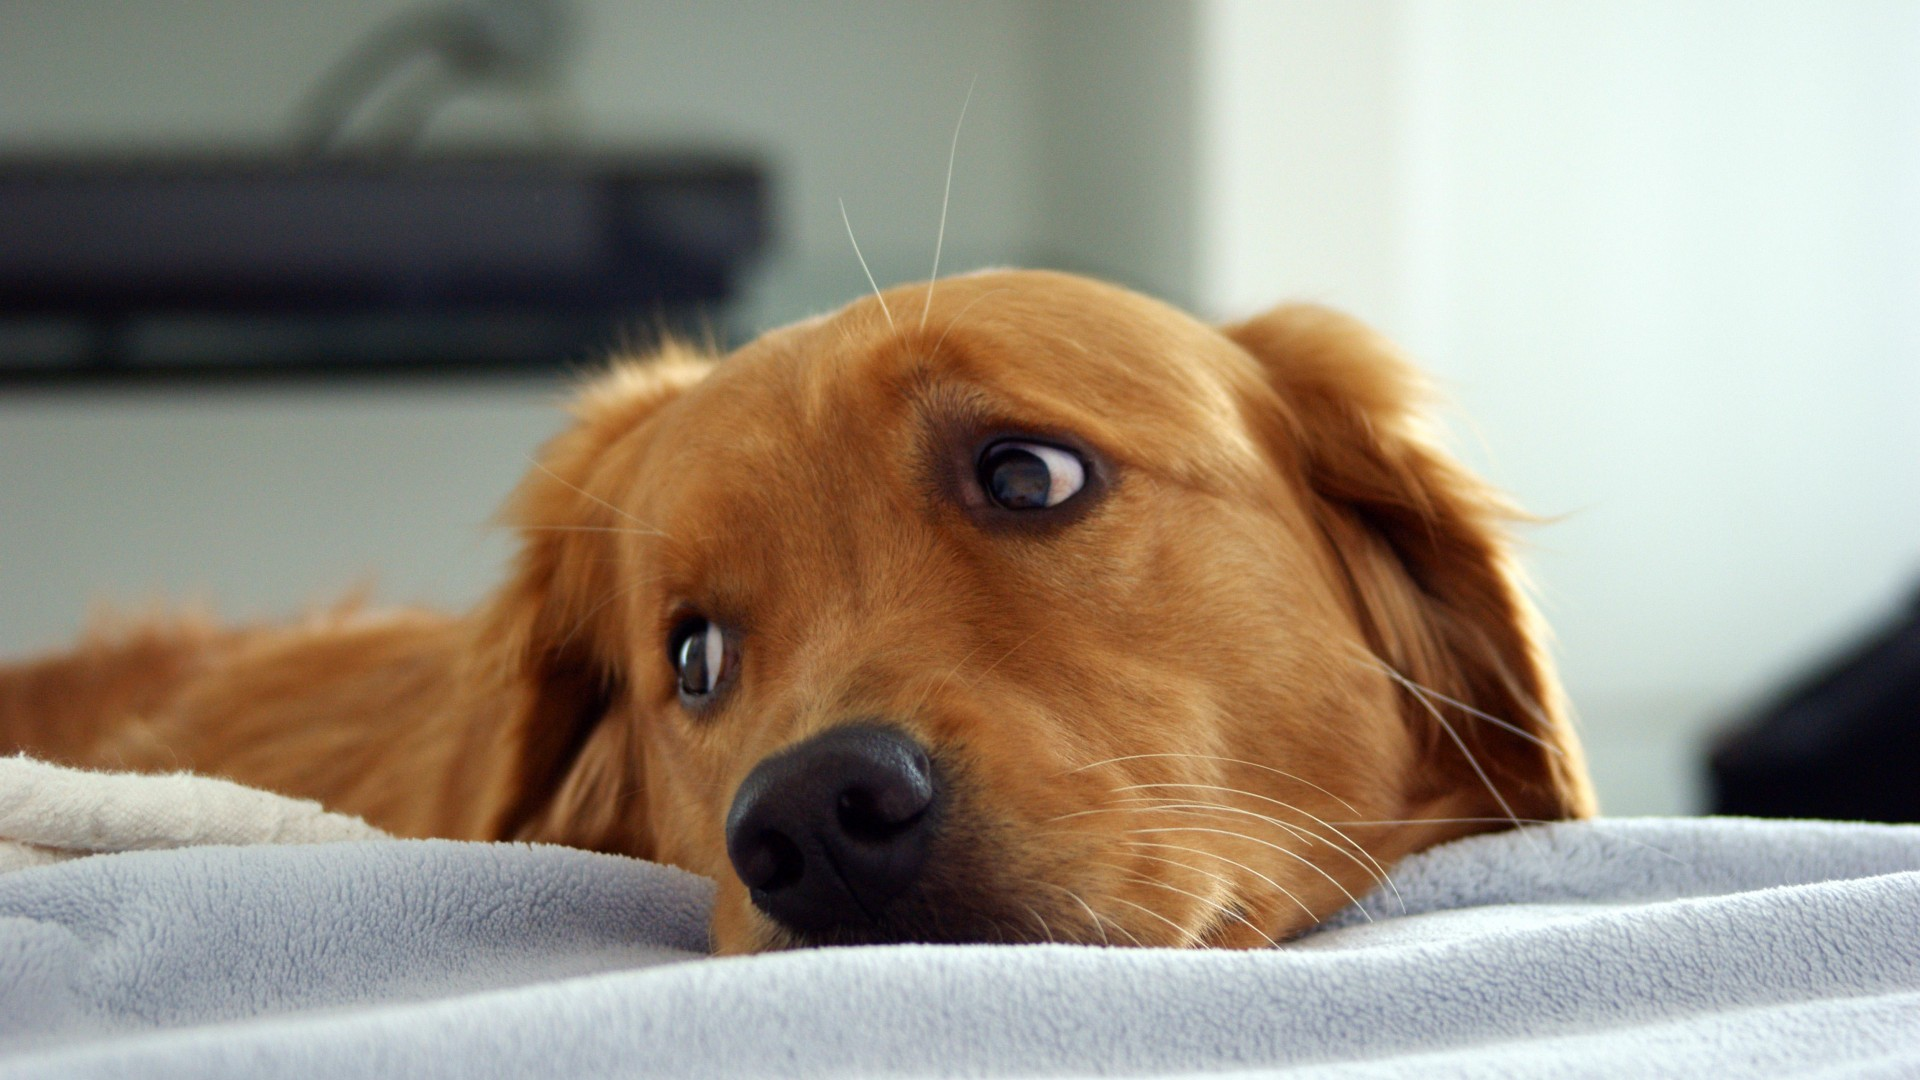 a puppy resting its head on a bed